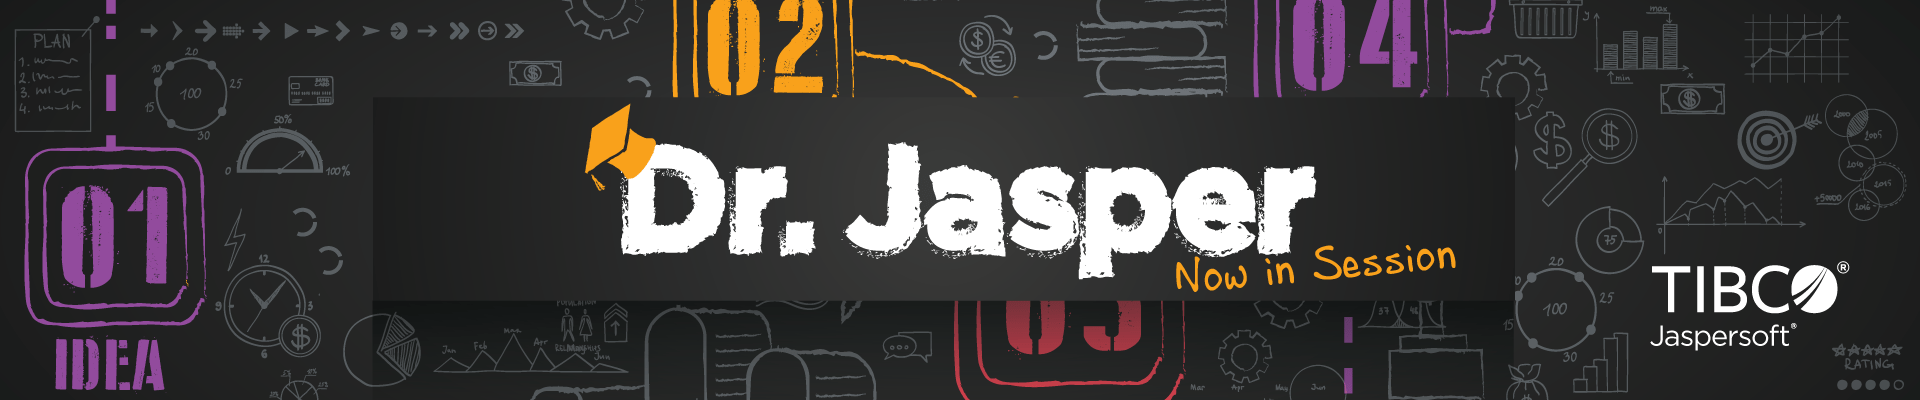 Dr. Jasper's Office Hours - Visualize.js Tips, Tricks, and Best Practices